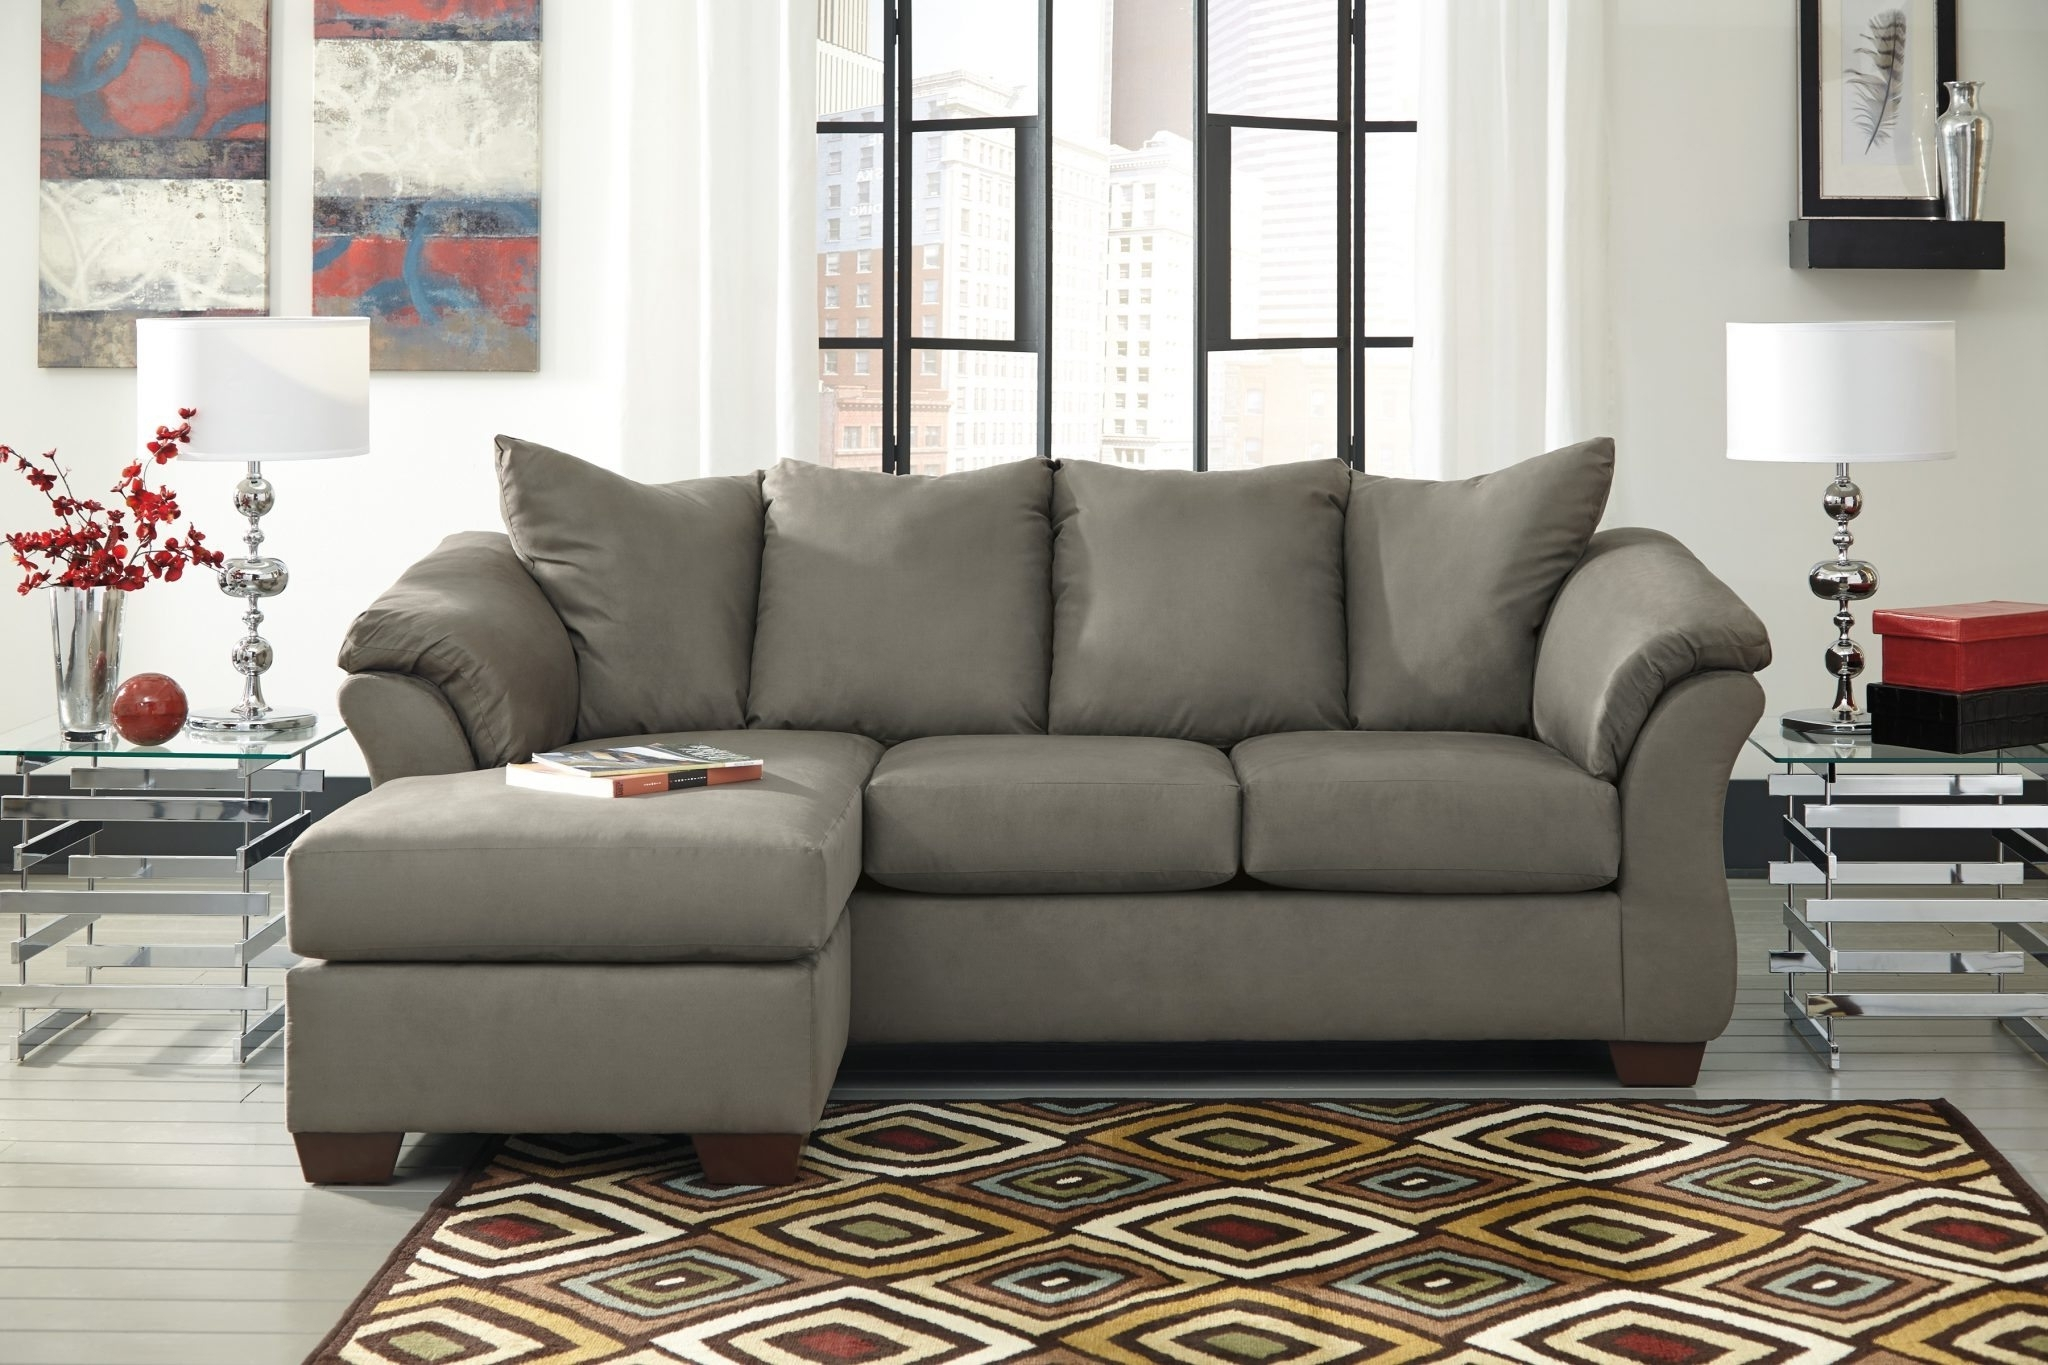 Best Furniture Mentor Oh: Furniture Store – Ashley Furniture Within Well Known Ashley Furniture Sectionals With Chaise (View 6 of 15)